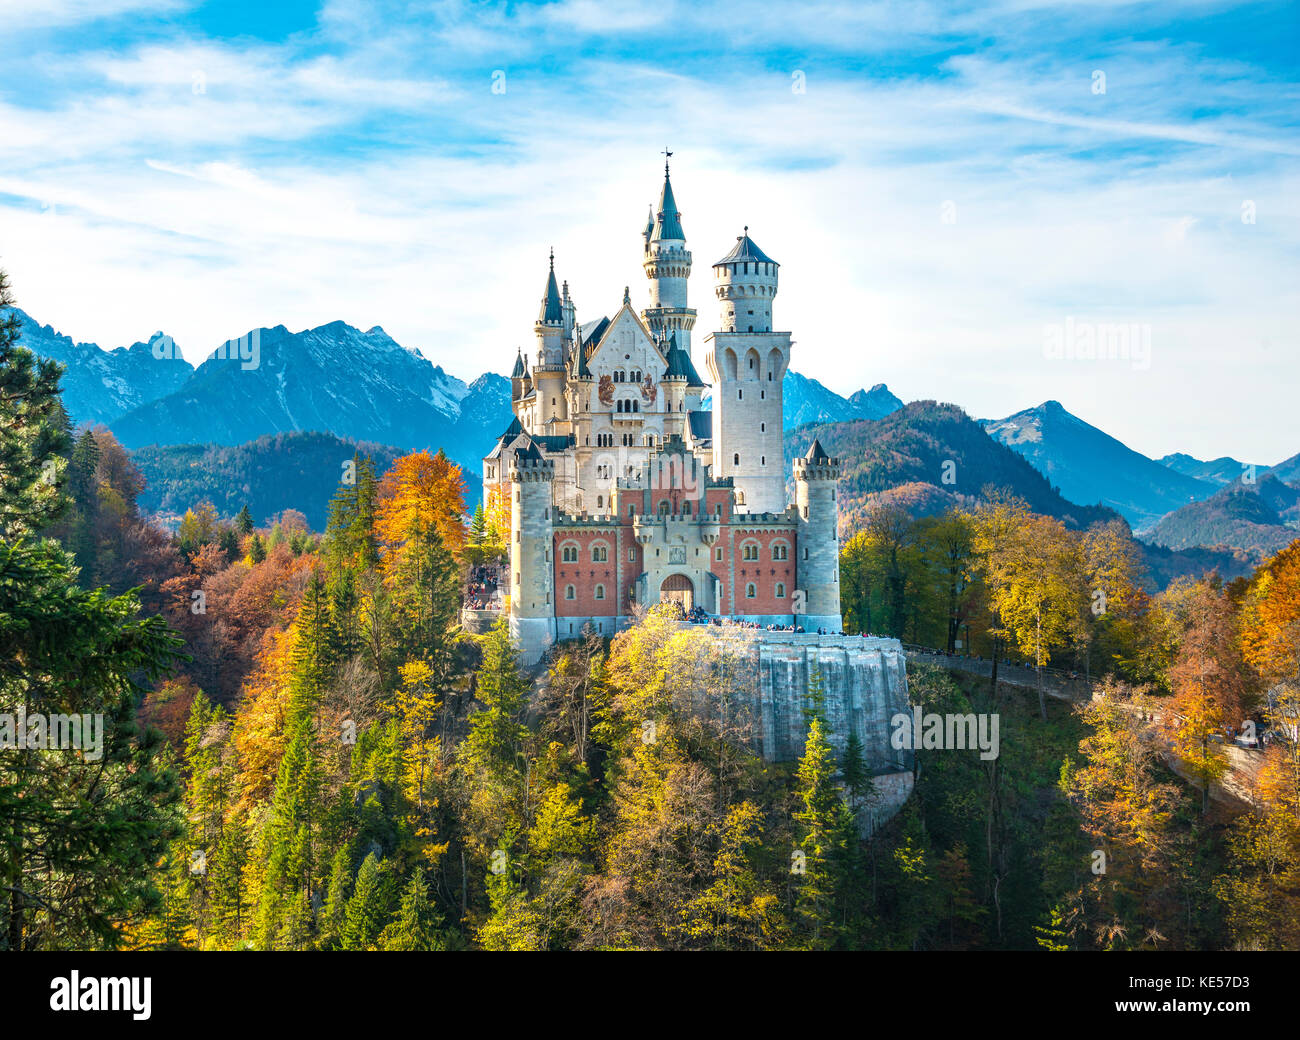 Neuschwanstein Castle in autumn, Schwangau, East Allgäu, Allgäu, Swabia, Upper Bavaria, Bavaria, Germany - Stock Image